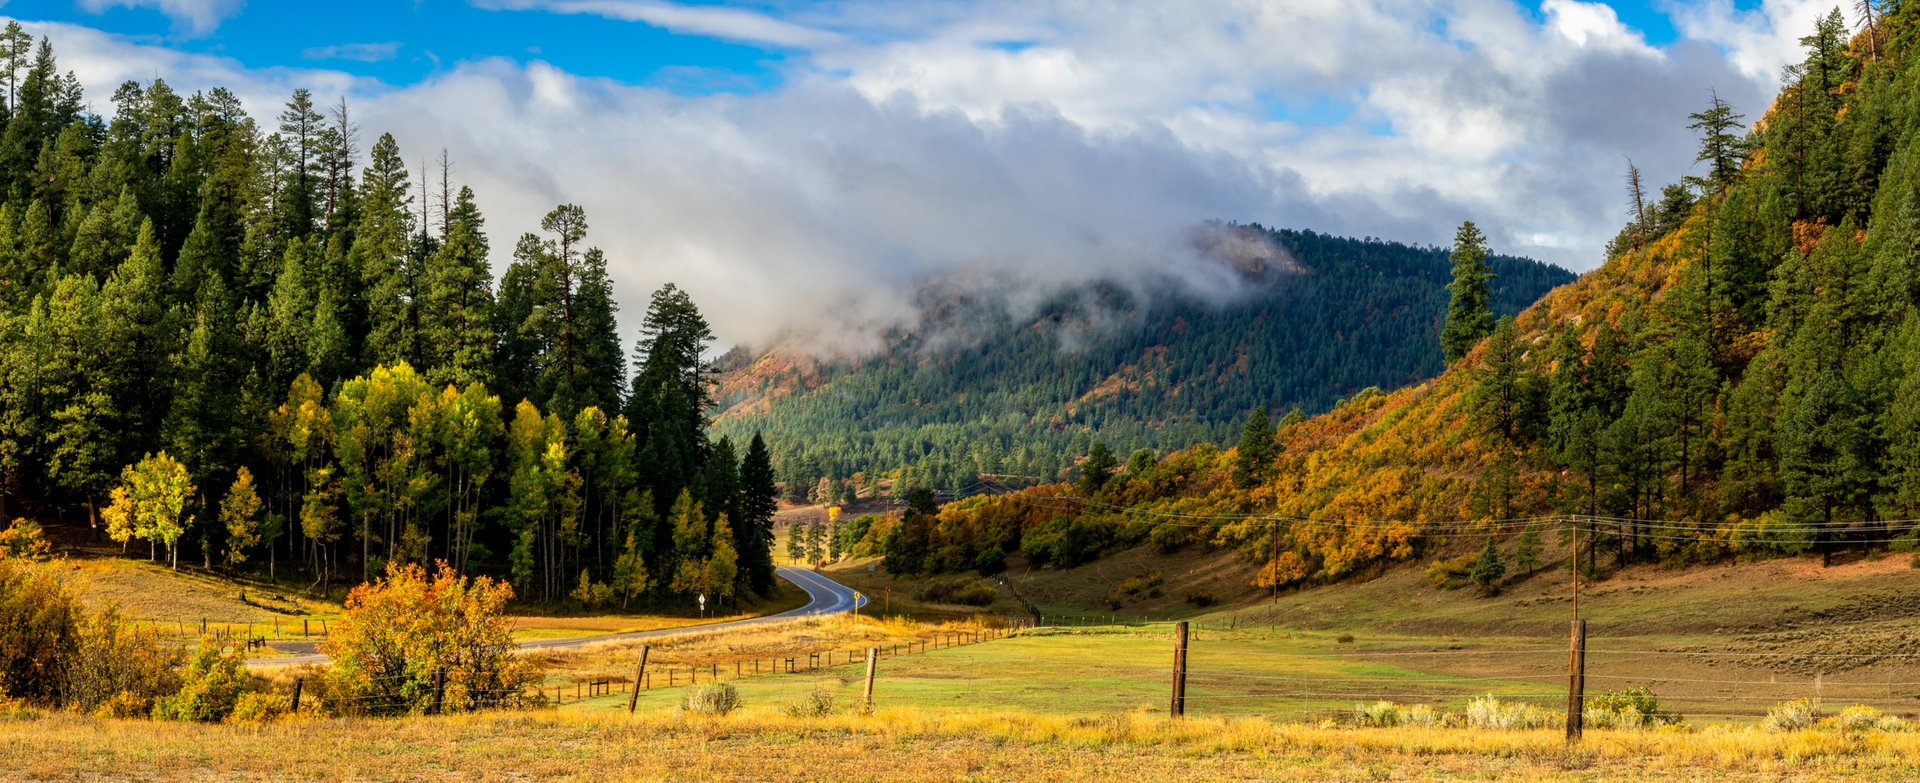 Fall colors in Chama 2020